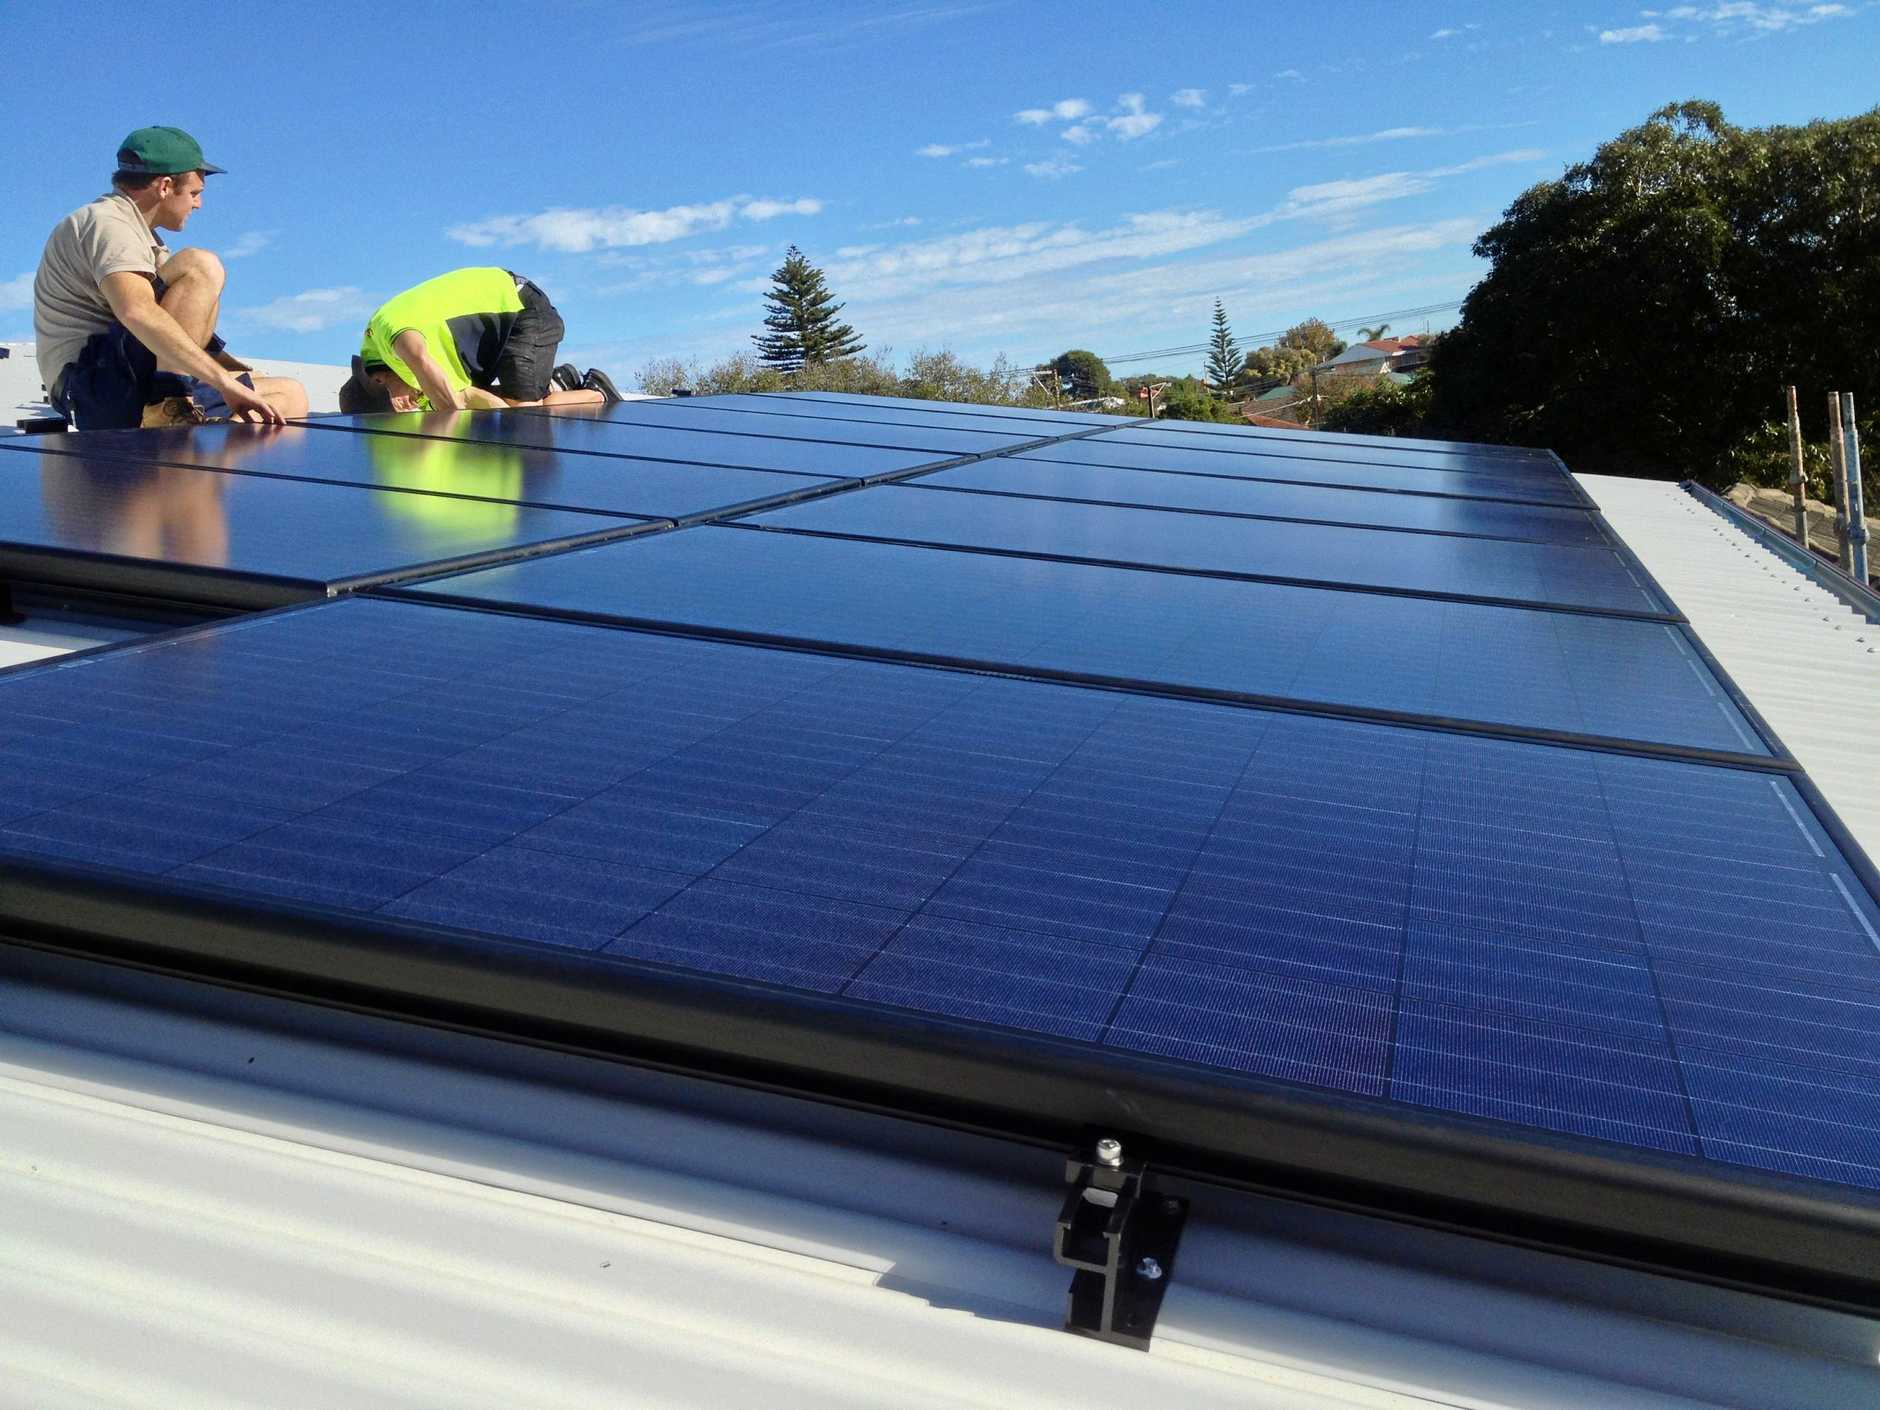 WIN-WIN: Solar Quotes founder Finn Peacock says there is no better financial or environmental investment than Solar power for sunny Queensland homes.